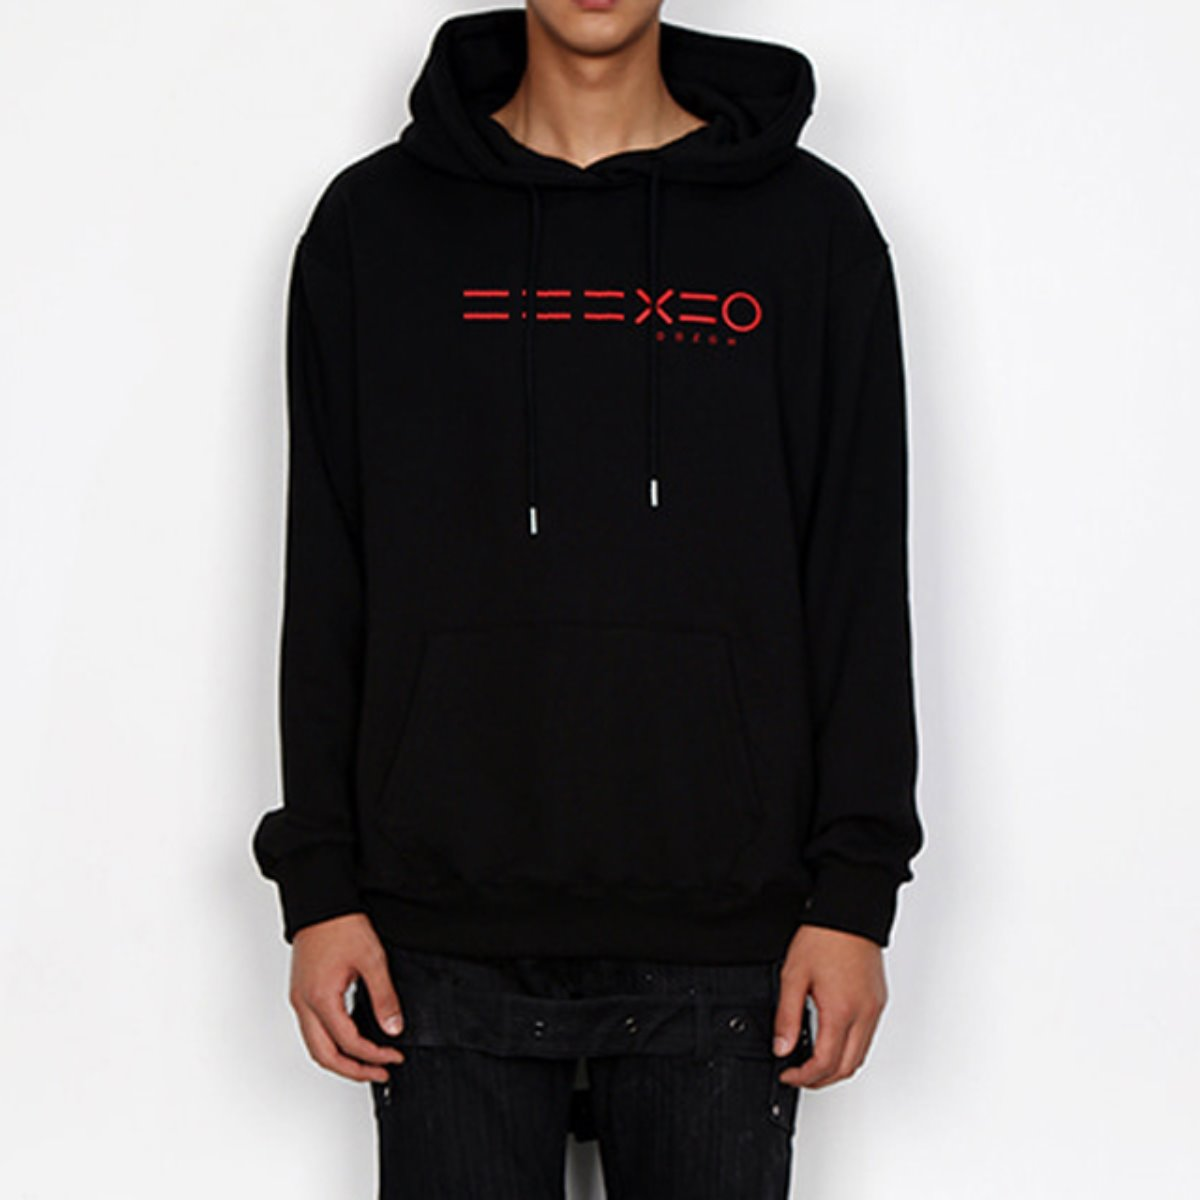 RED 3 EQUAL LINE & LOGO HOODIE SWEATSHIRTS(BLACK)